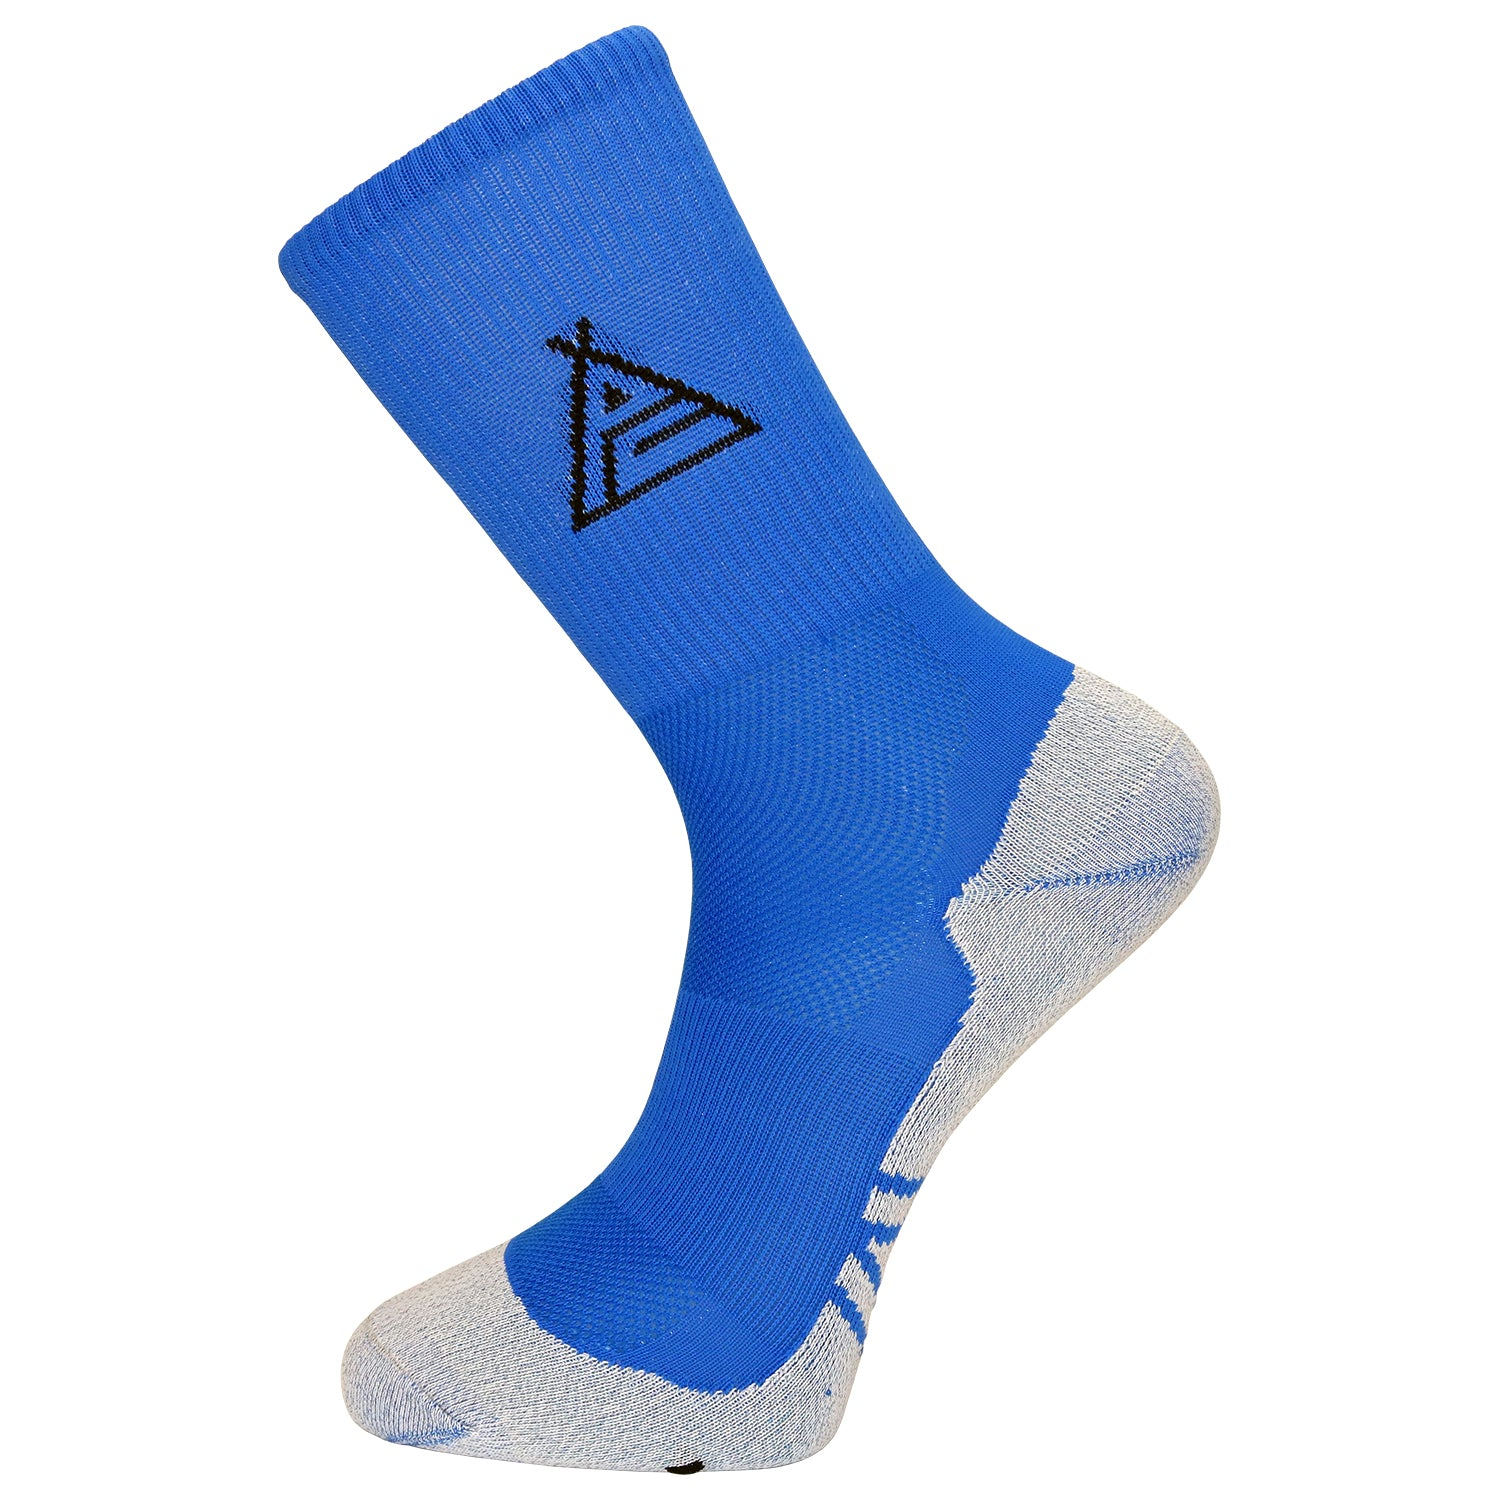 Prendas Spring/Summer Dryarn-Carbon Royal Blue Socks